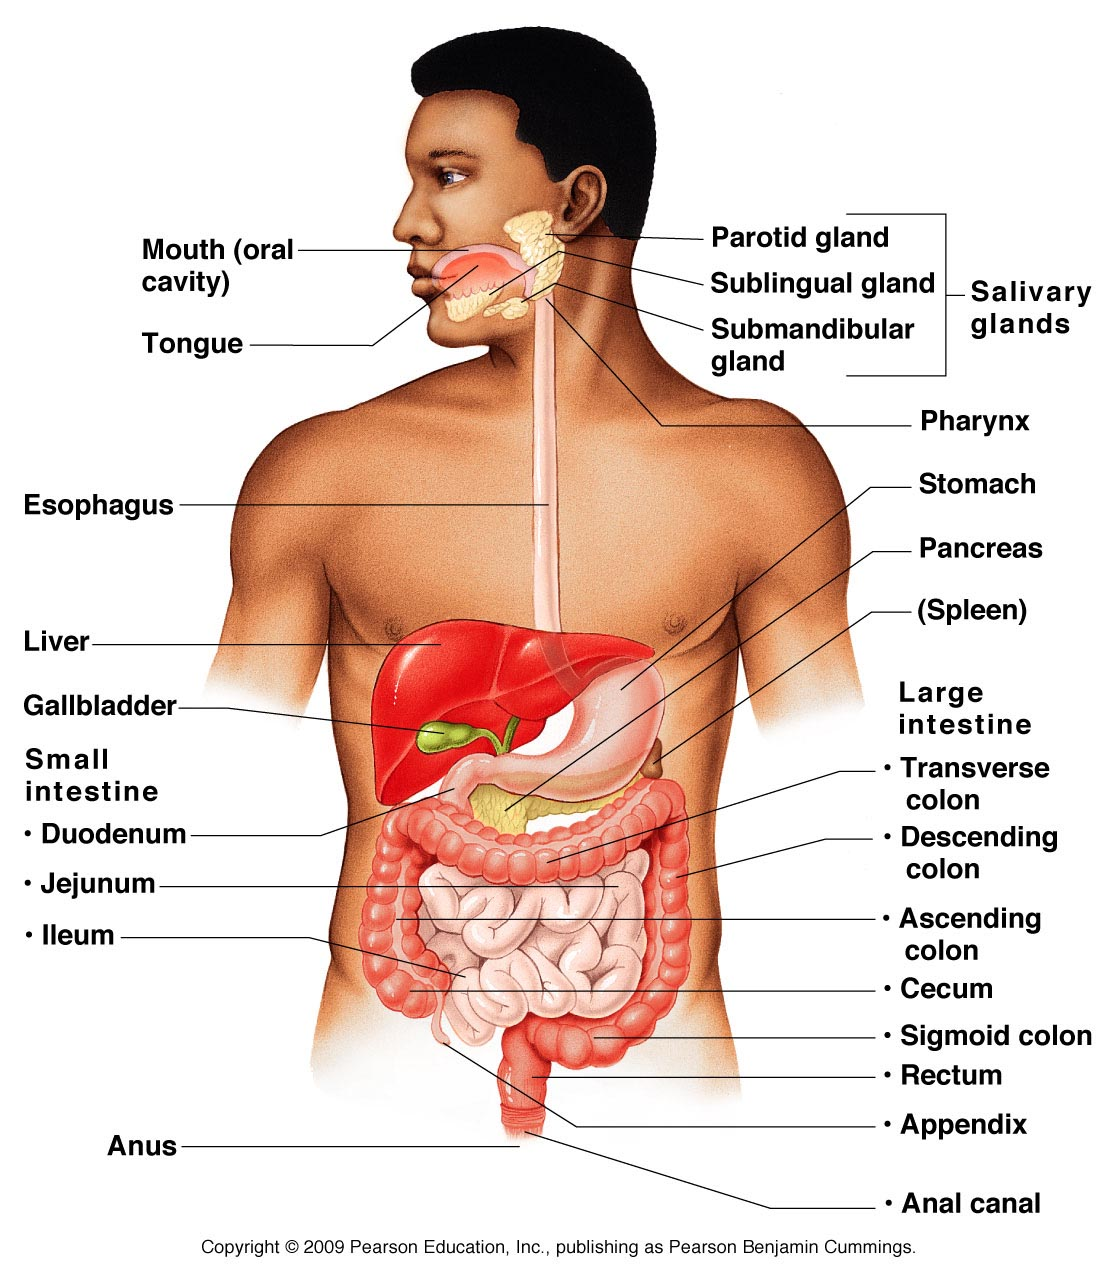 Organ Systems Of Human Body And Their Functions 11